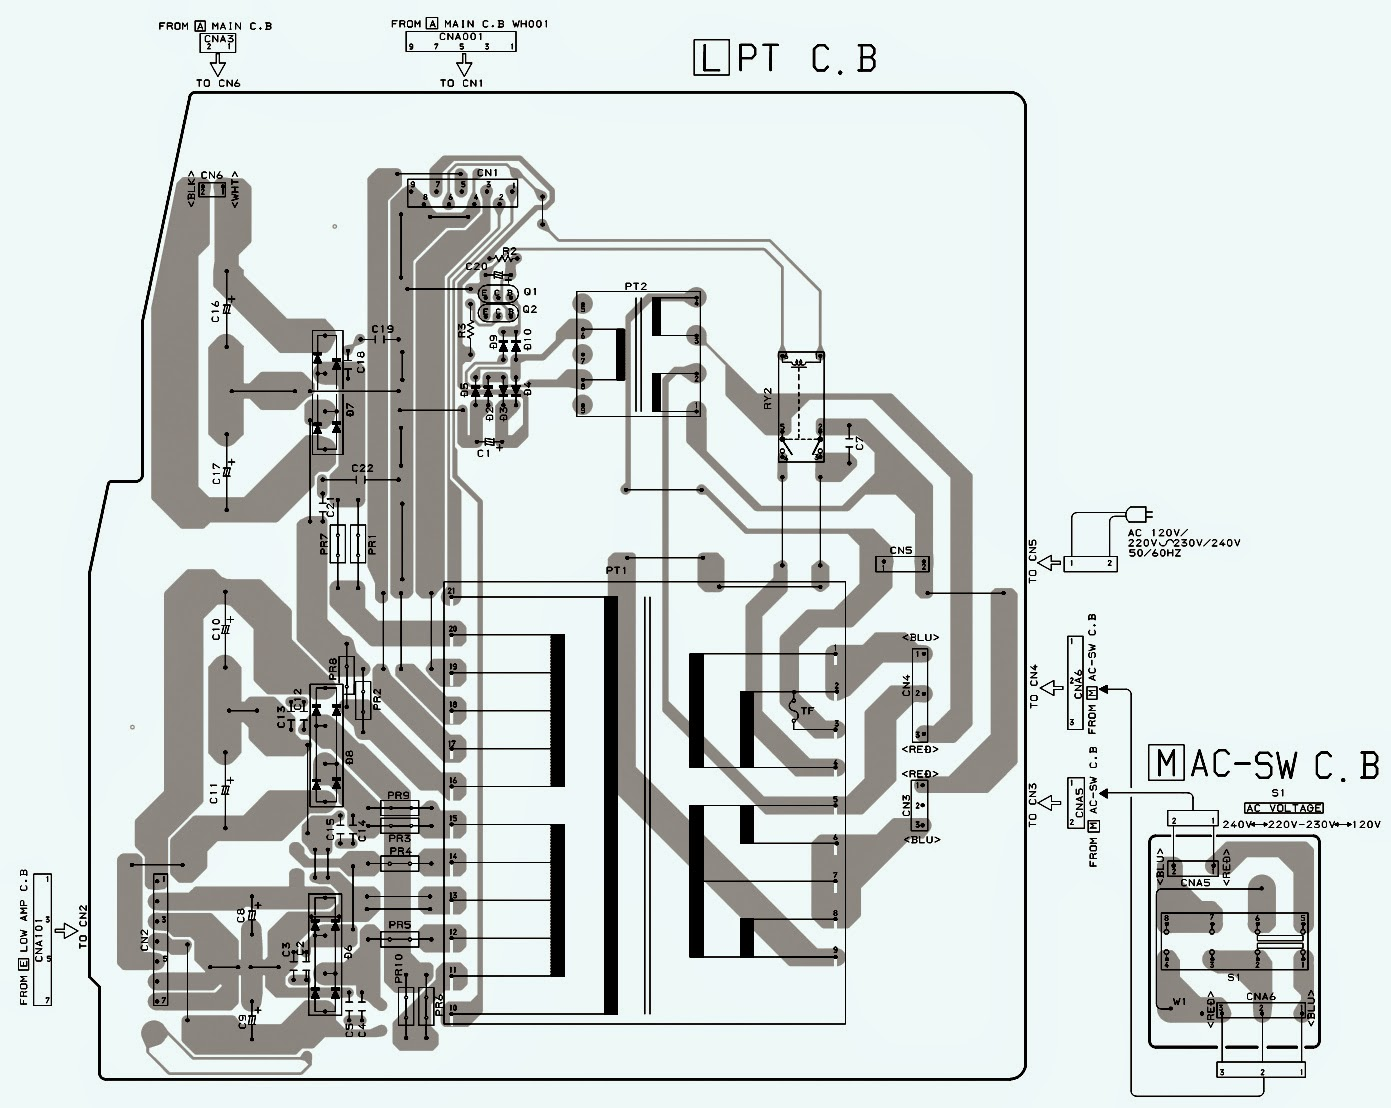 pwb+power.bmp aiwa xh a1060 compact disc stereo system schematics electro help aiwa cdc-x144 wiring diagram at bayanpartner.co